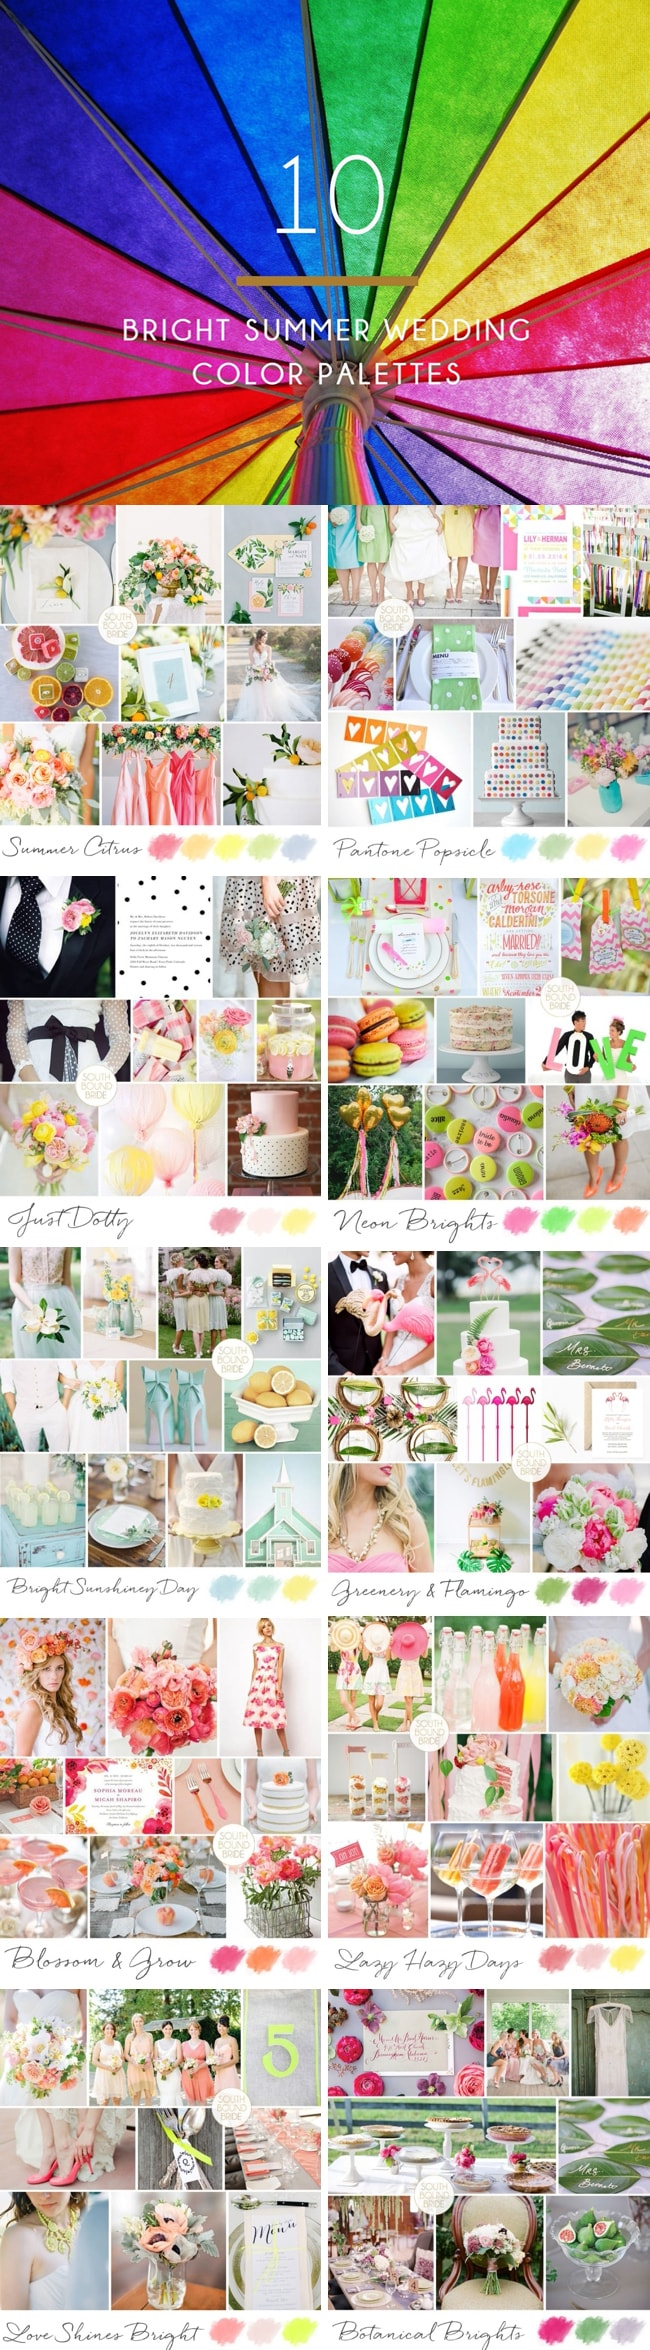 10 Bright Summer Wedding Color Palettes | SouthBound Bride